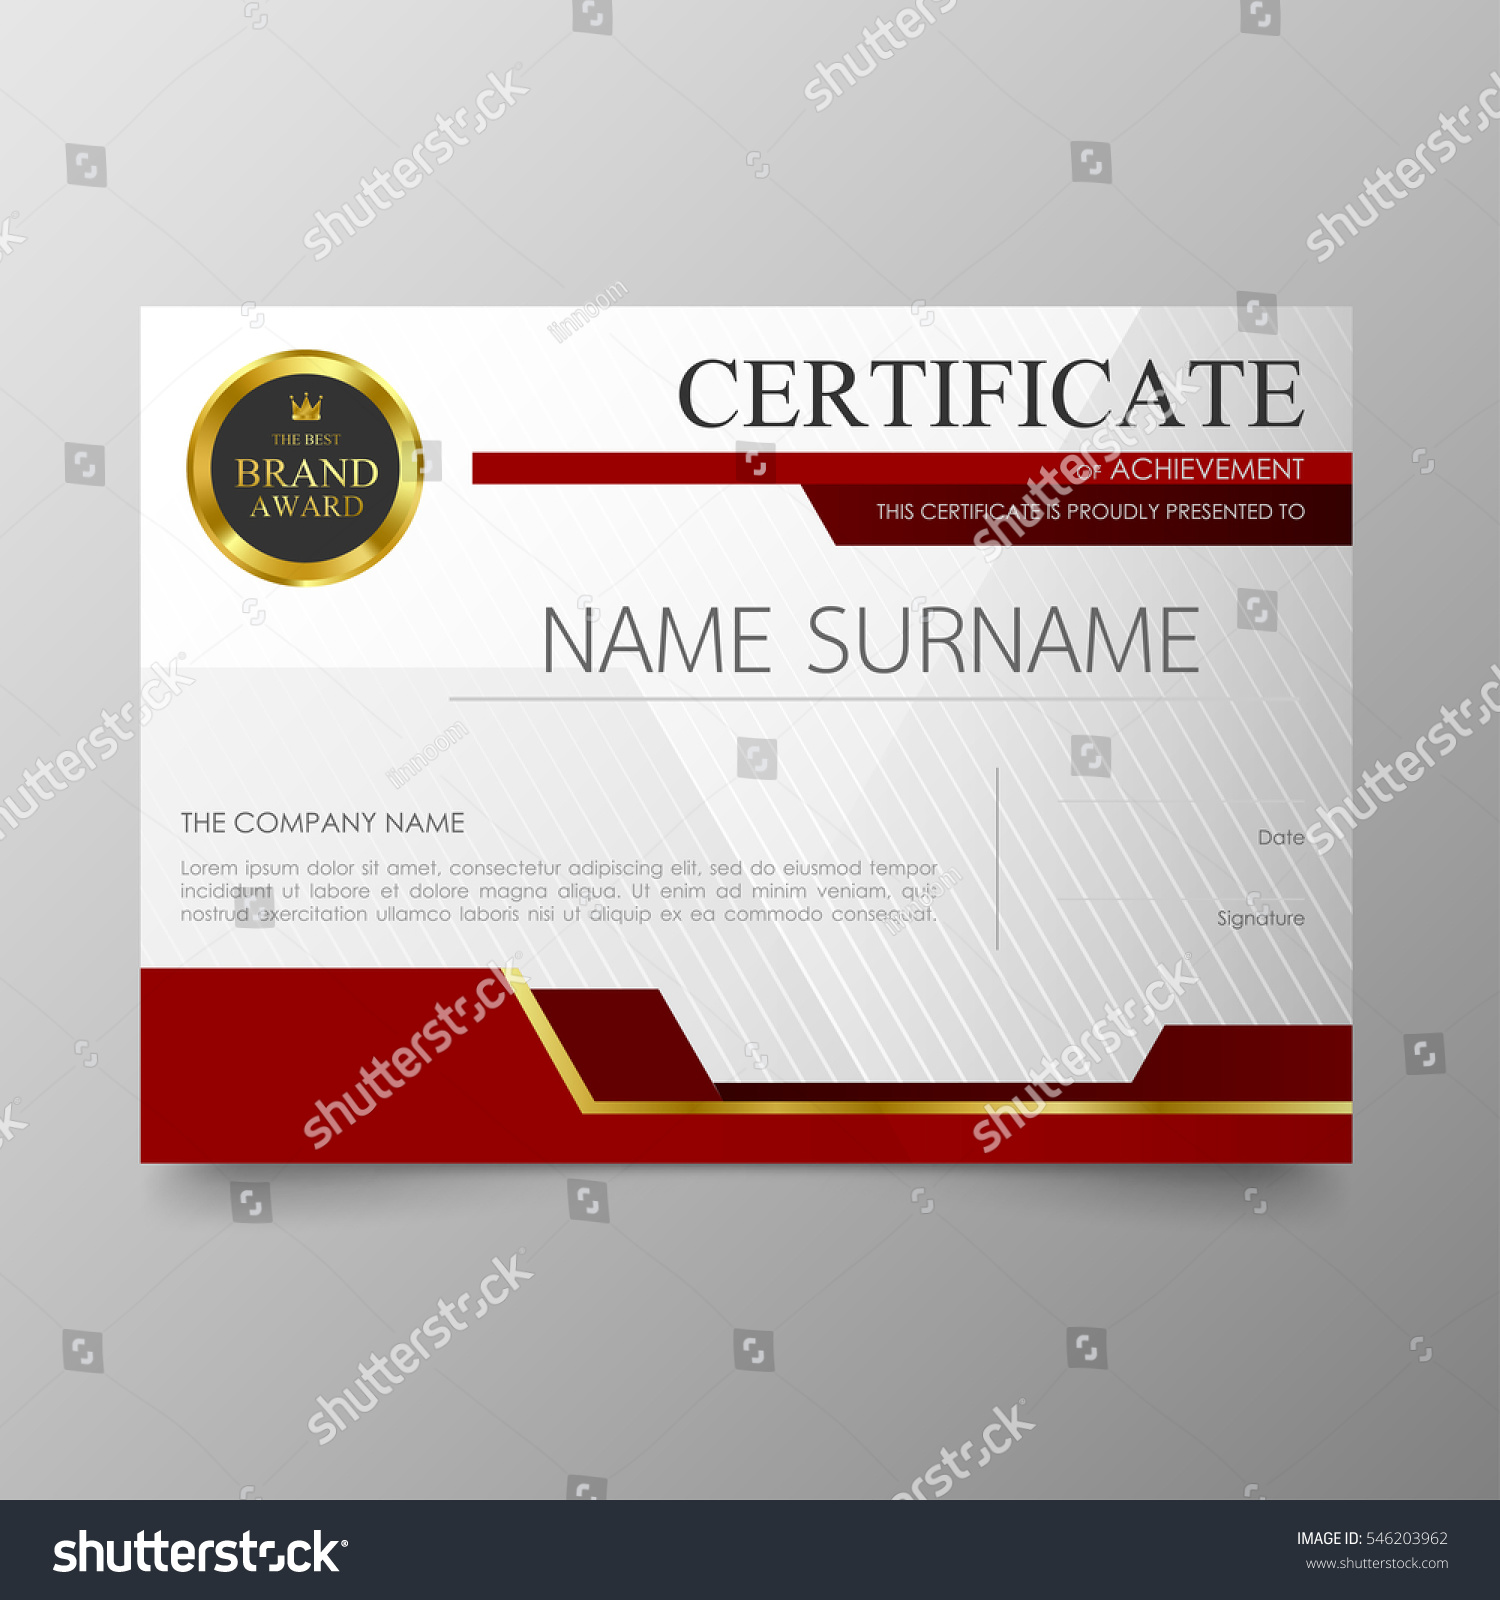 Certificate template awards diploma background vector stock vector certificate template awards diploma background vector modern value design and luxurious layout leaflet cover elegant yelopaper Gallery